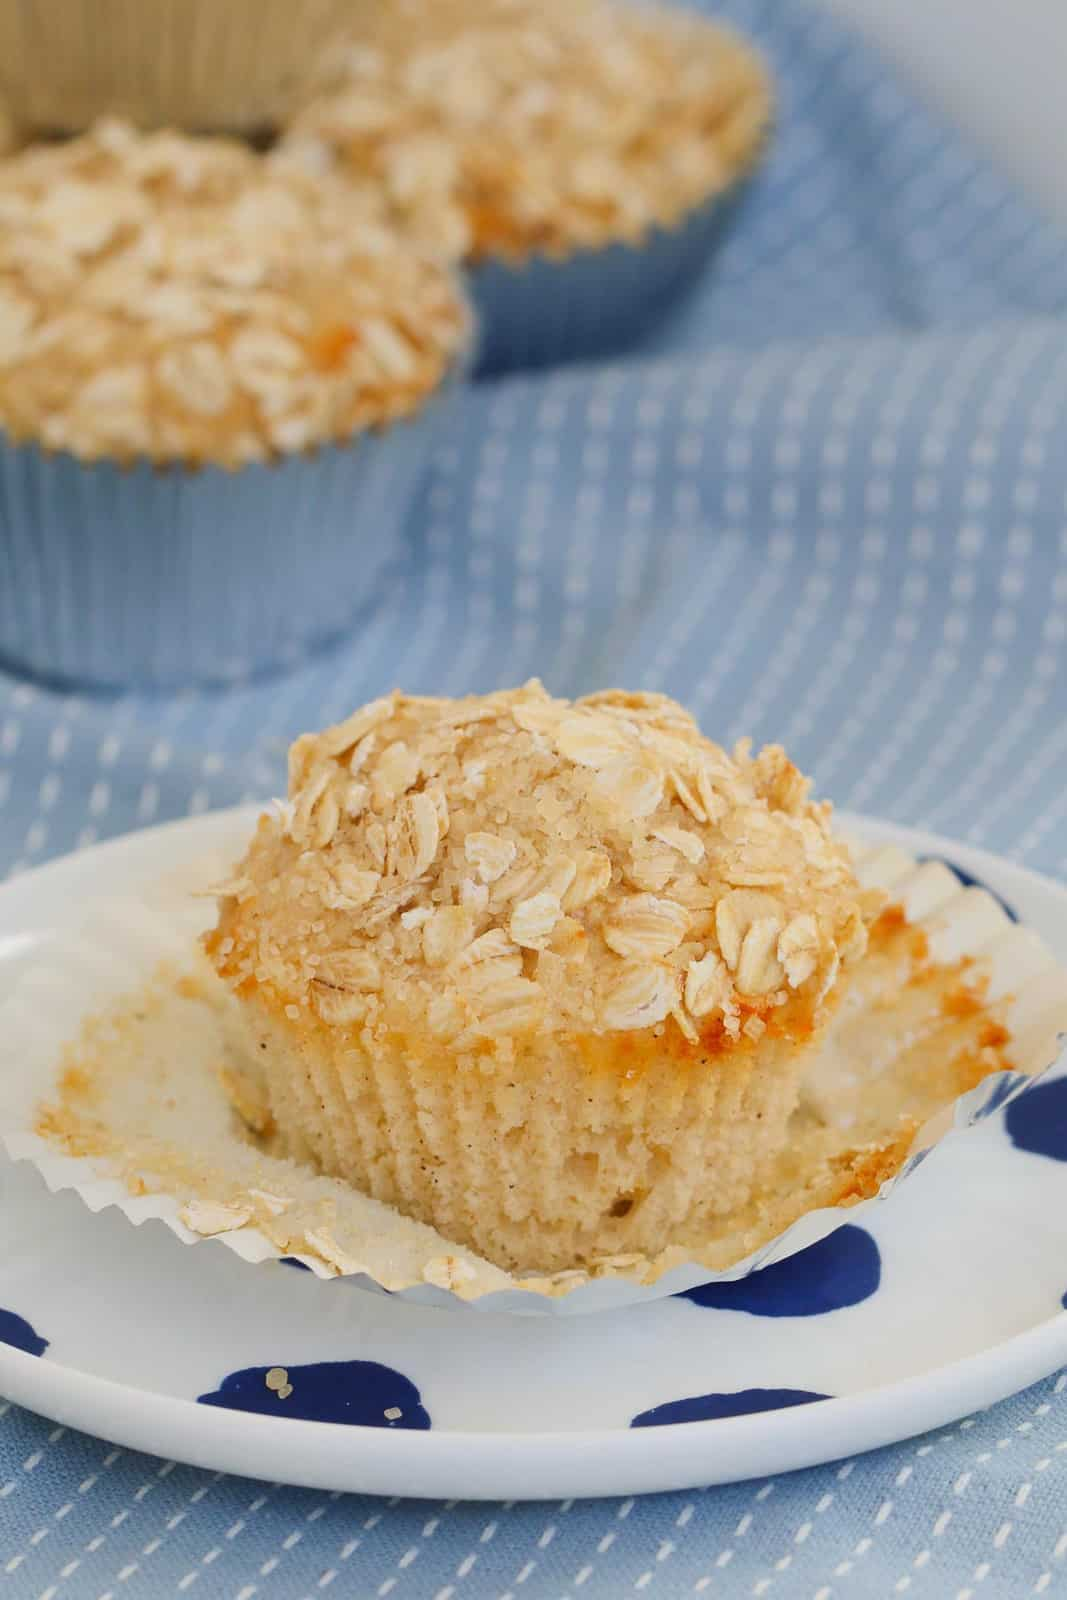 A closeup shot of an apple oat muffin on white plate with blue dots